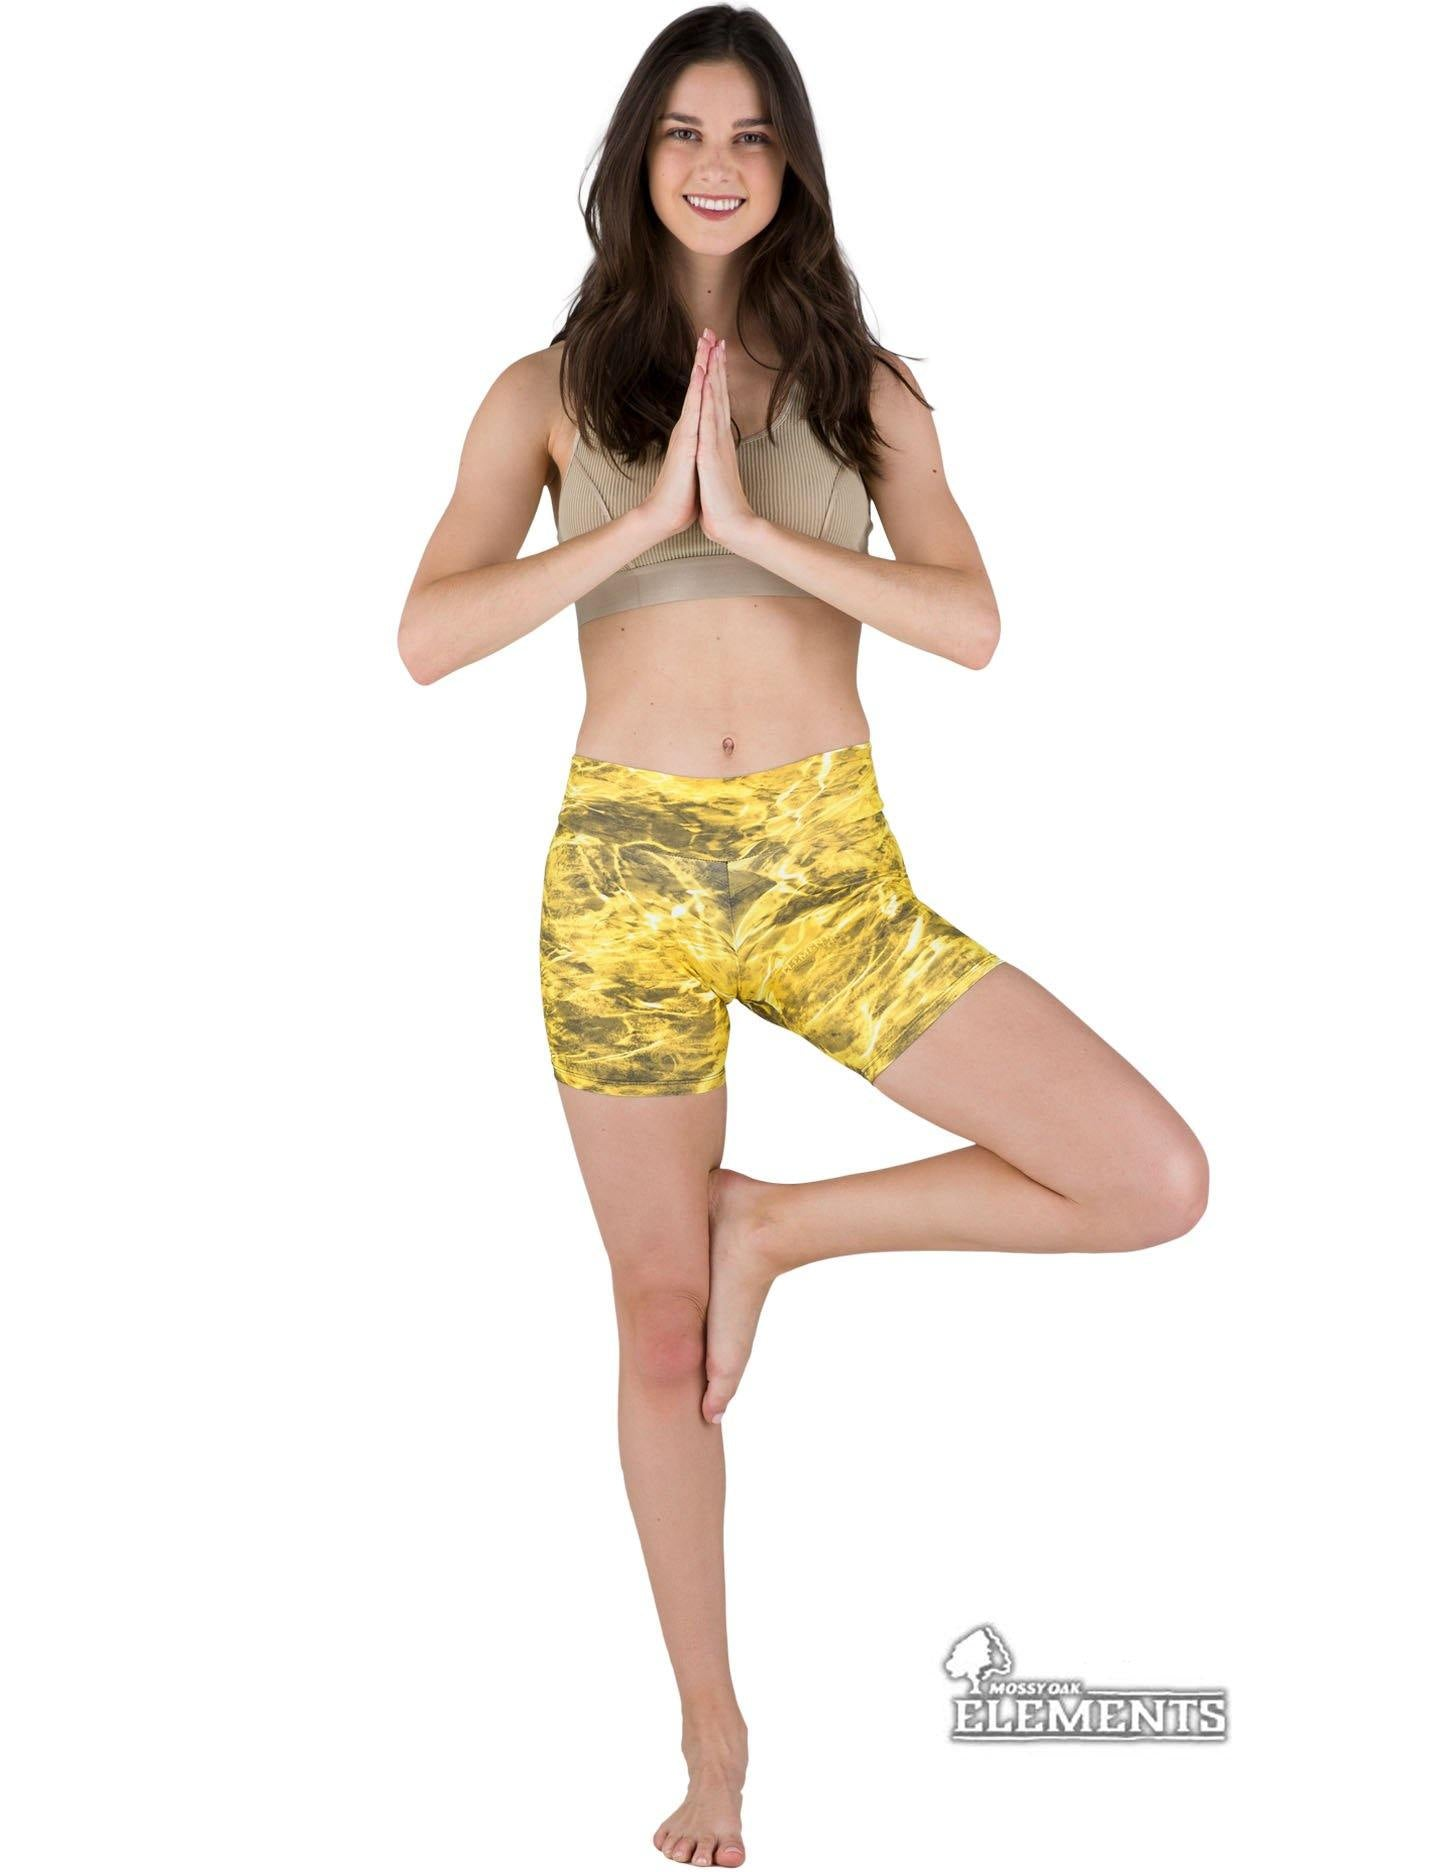 Apsara Shorts Low Waist, Mossy Oak Elements Yellowfin